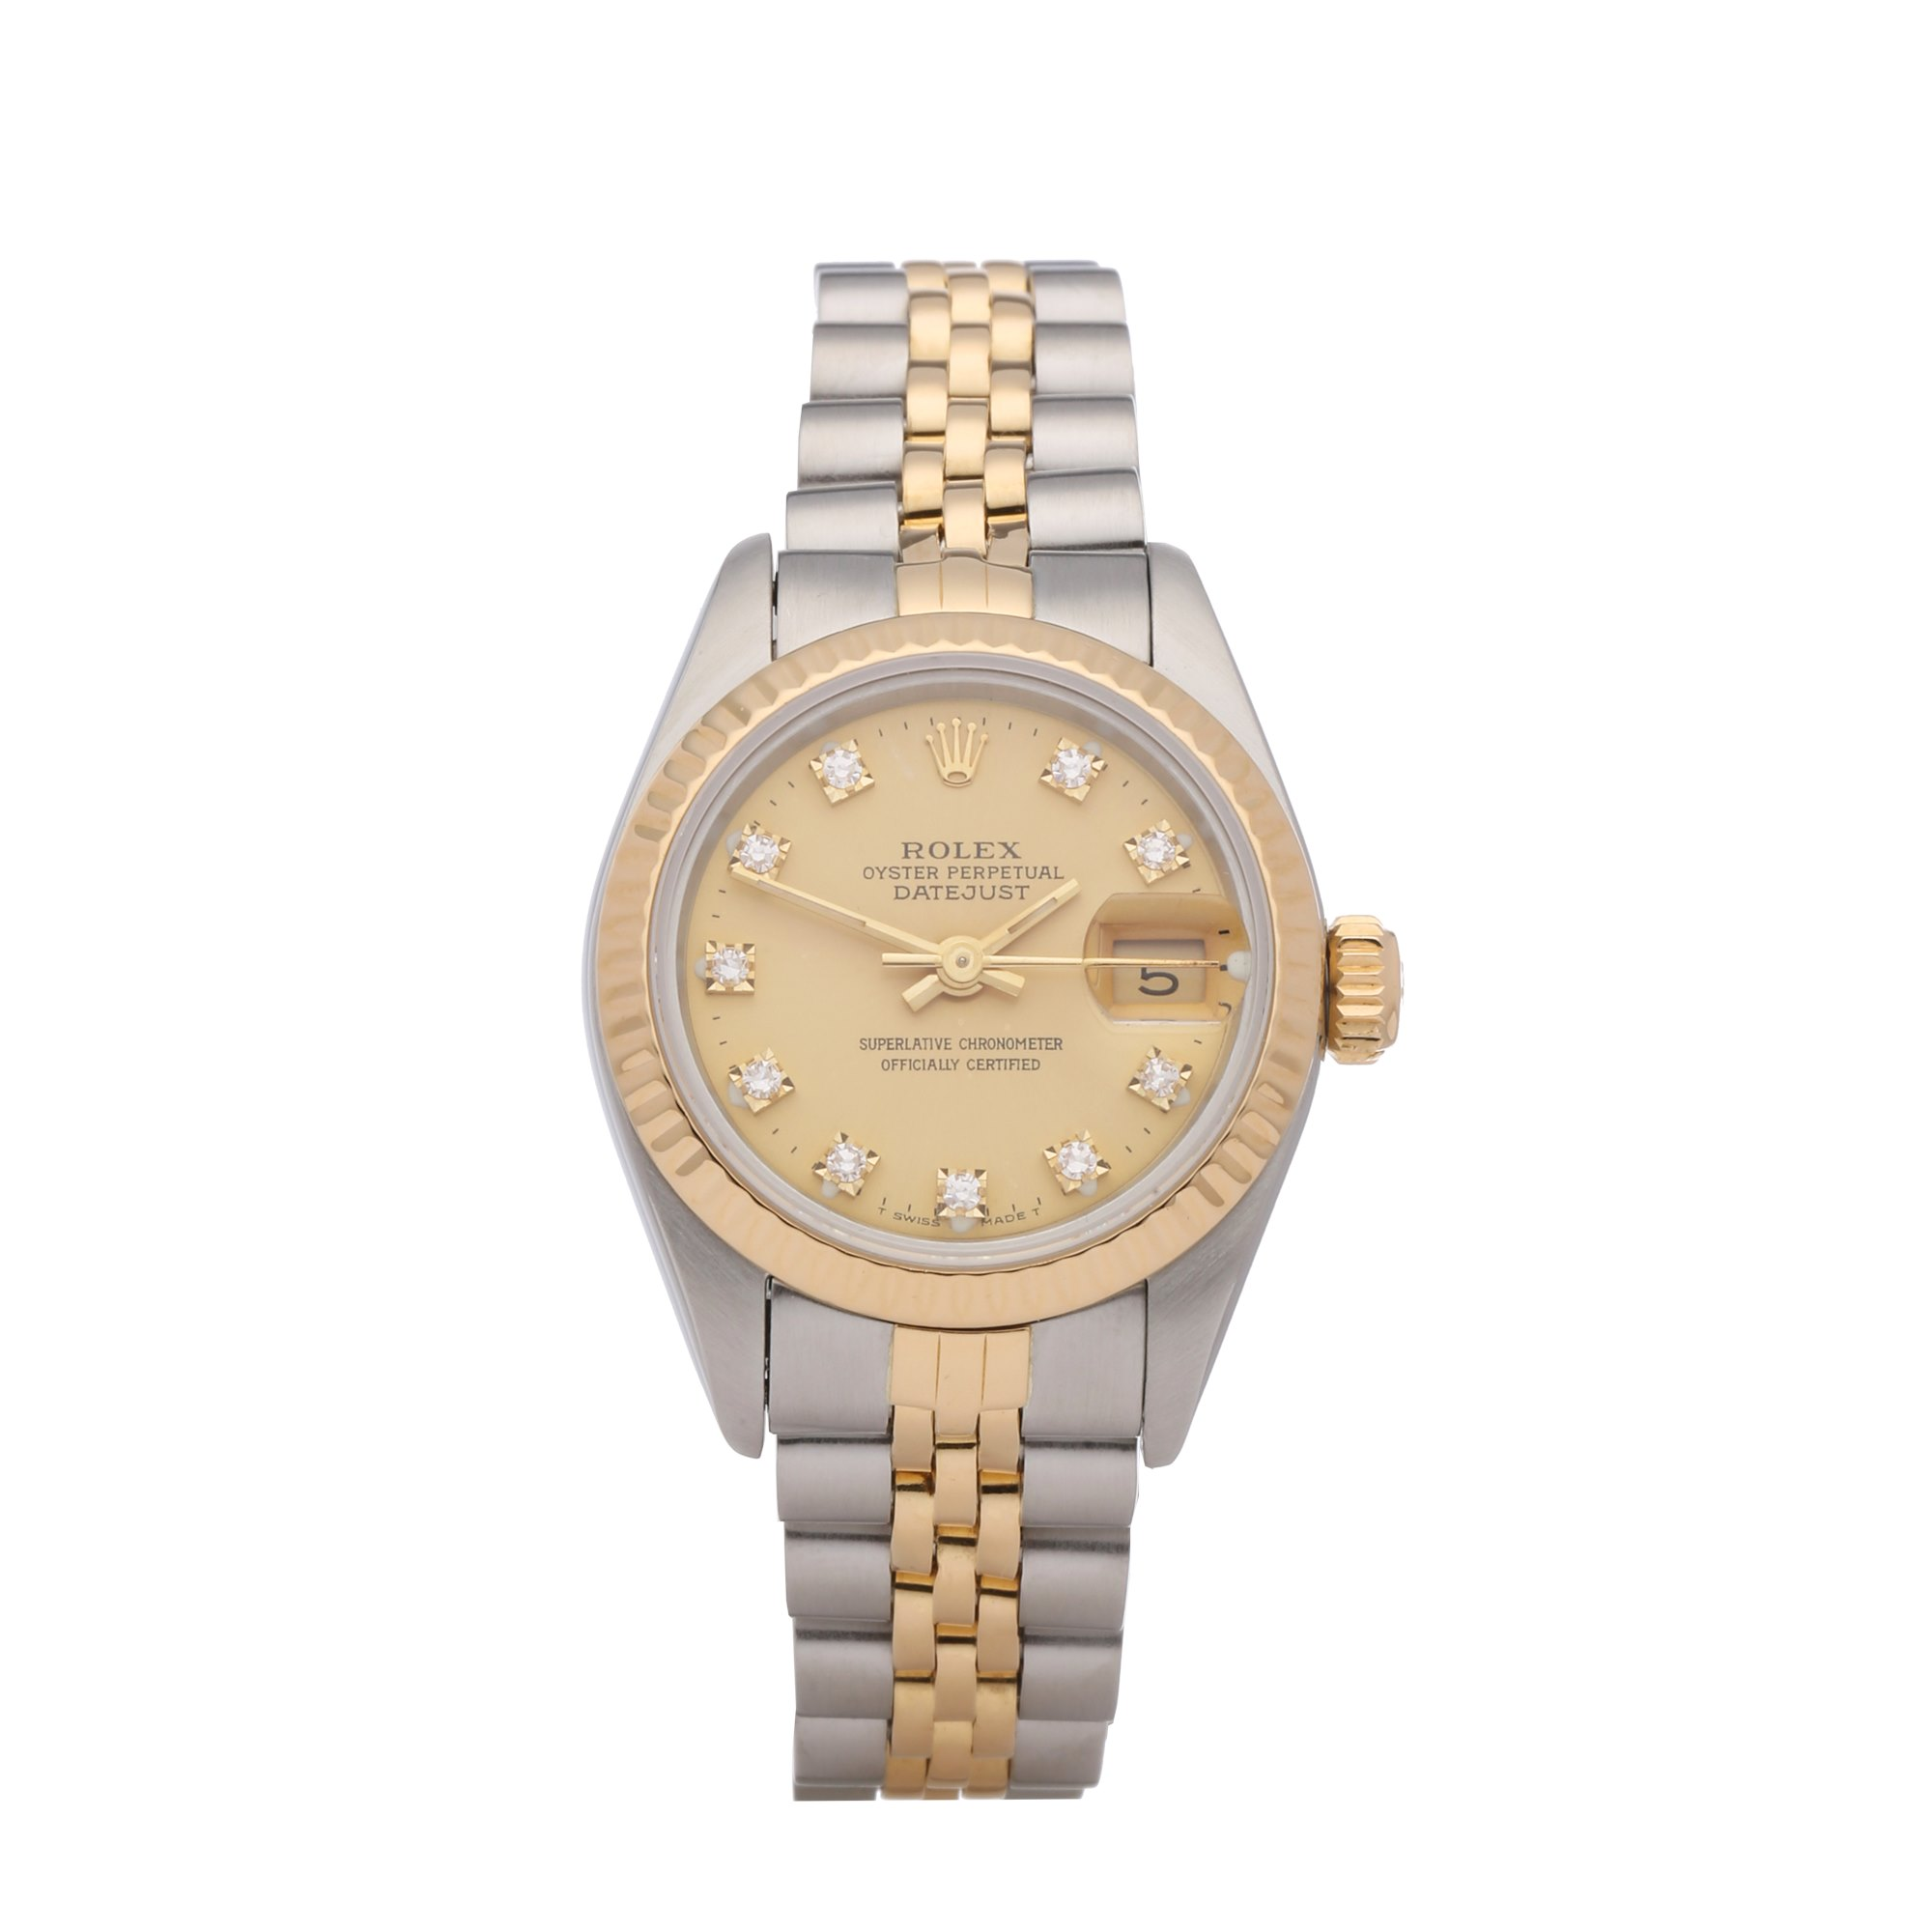 Rolex Datejust 26 18K Stainless Steel & Yellow Gold 69173